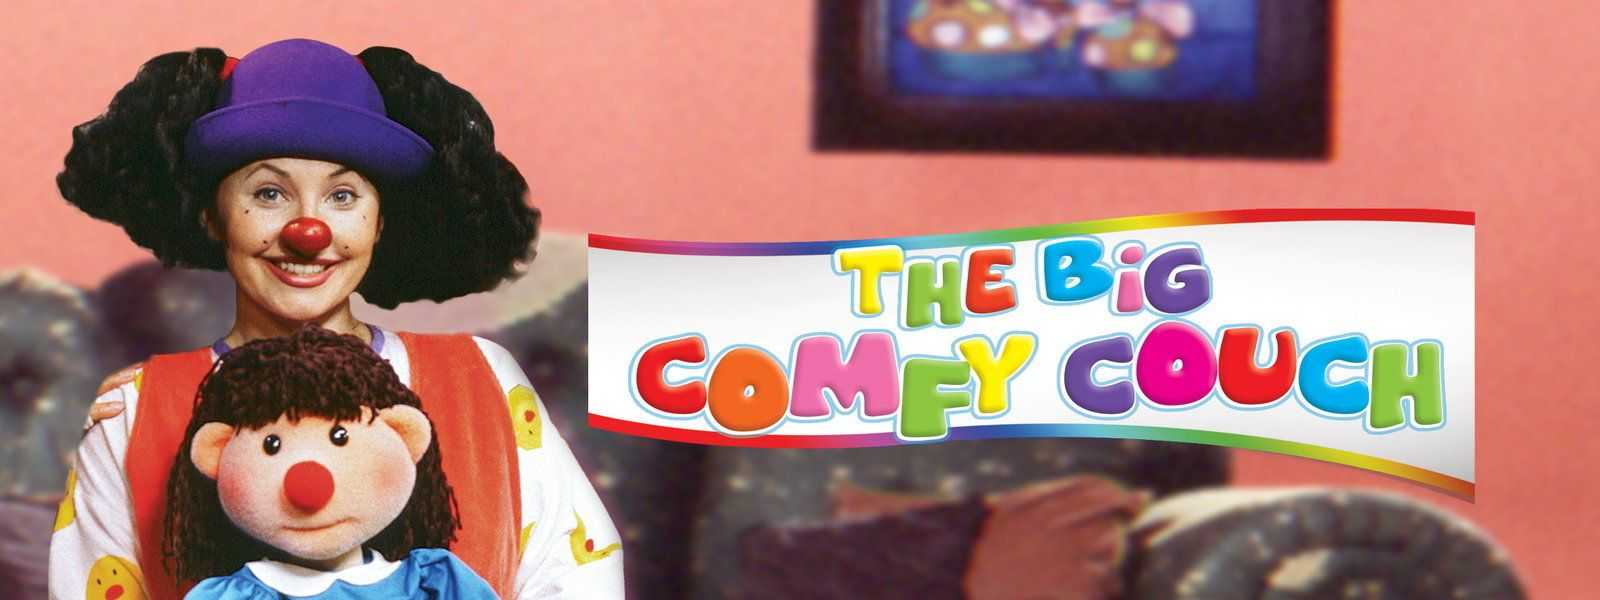 Hereu0027s What Loonette The Clown From u0027The Big Comfy Couchu0027 Looks Like Now | HuffPost  sc 1 st  HuffPost & Hereu0027s What Loonette The Clown From u0027The Big Comfy Couchu0027 Looks Like ...